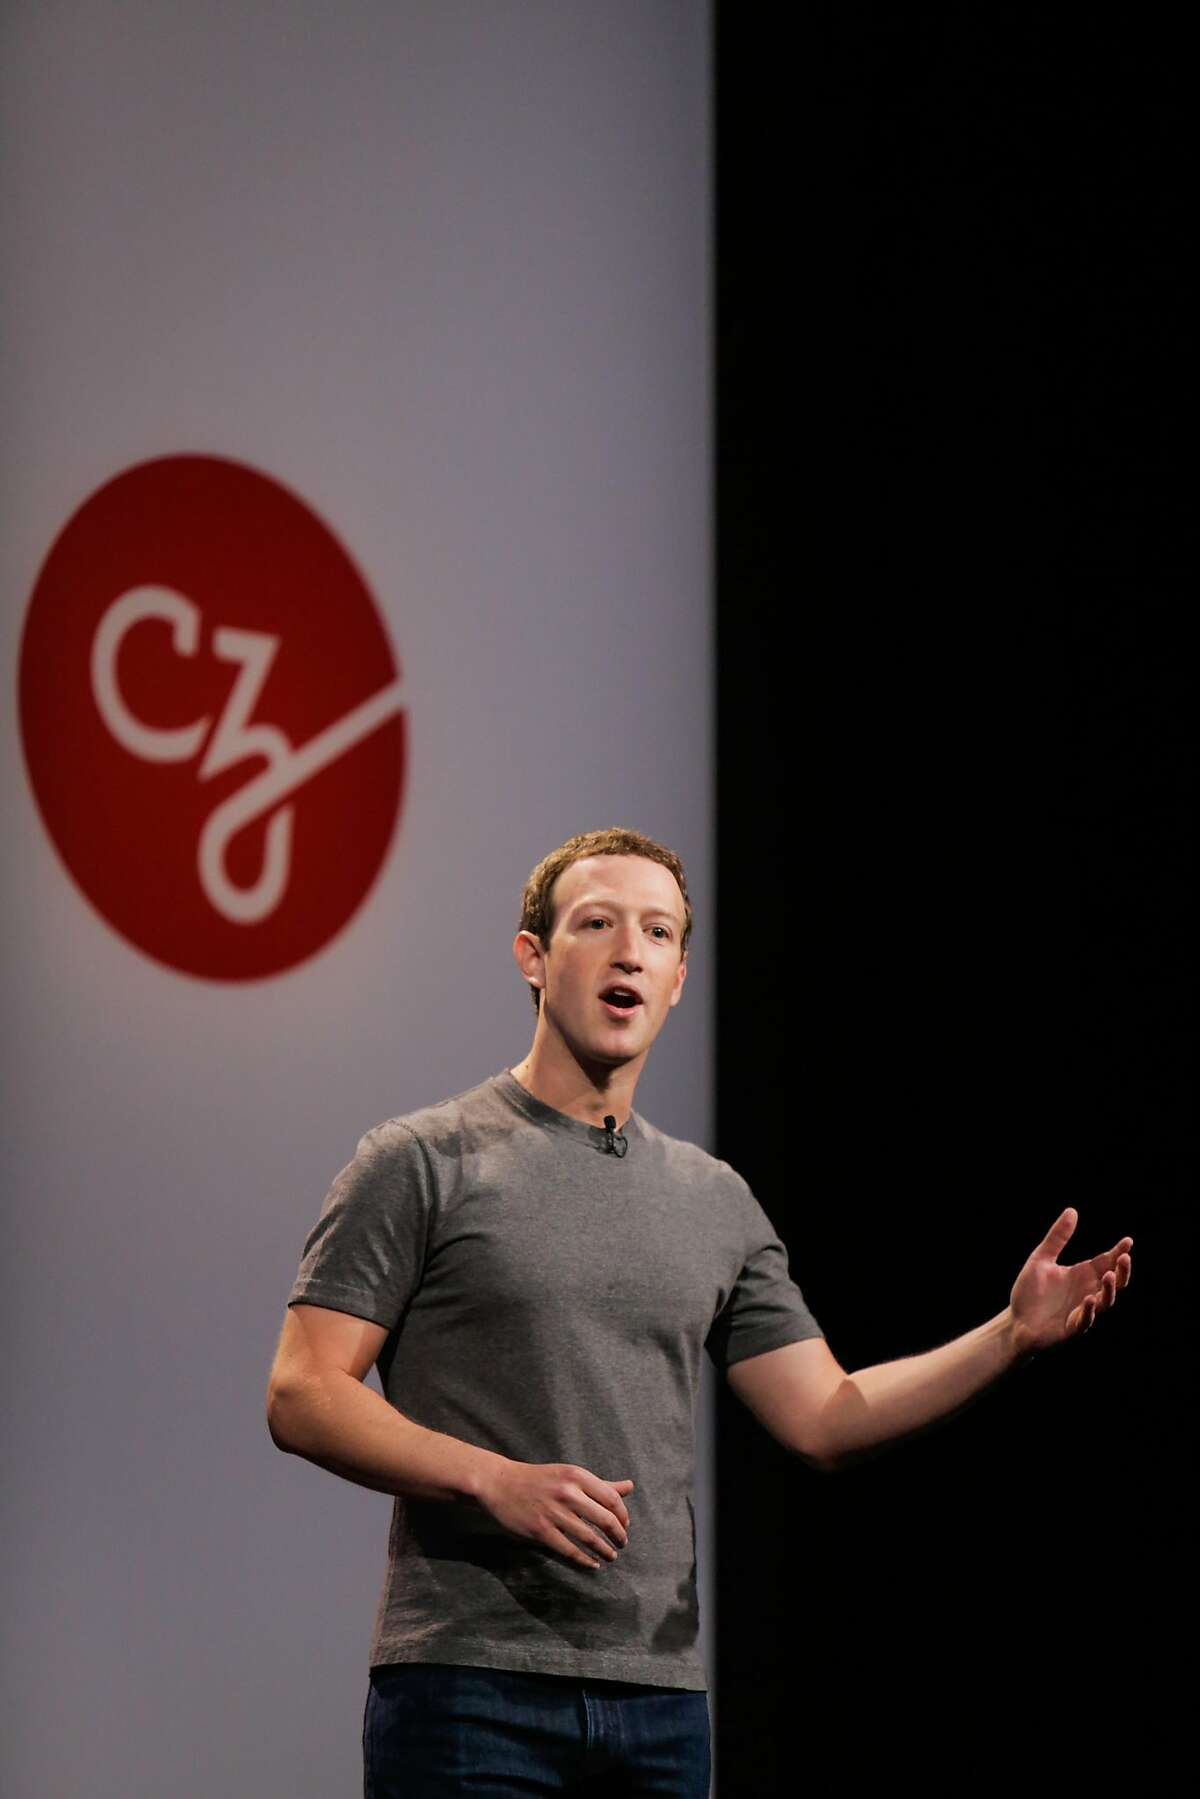 Facebook CEO and founder Mark Zuckerberg announced a new initiative to fund disease-prevention research, at the Rutter center at UCSF in San Francisco on Sept. 21, 2016.